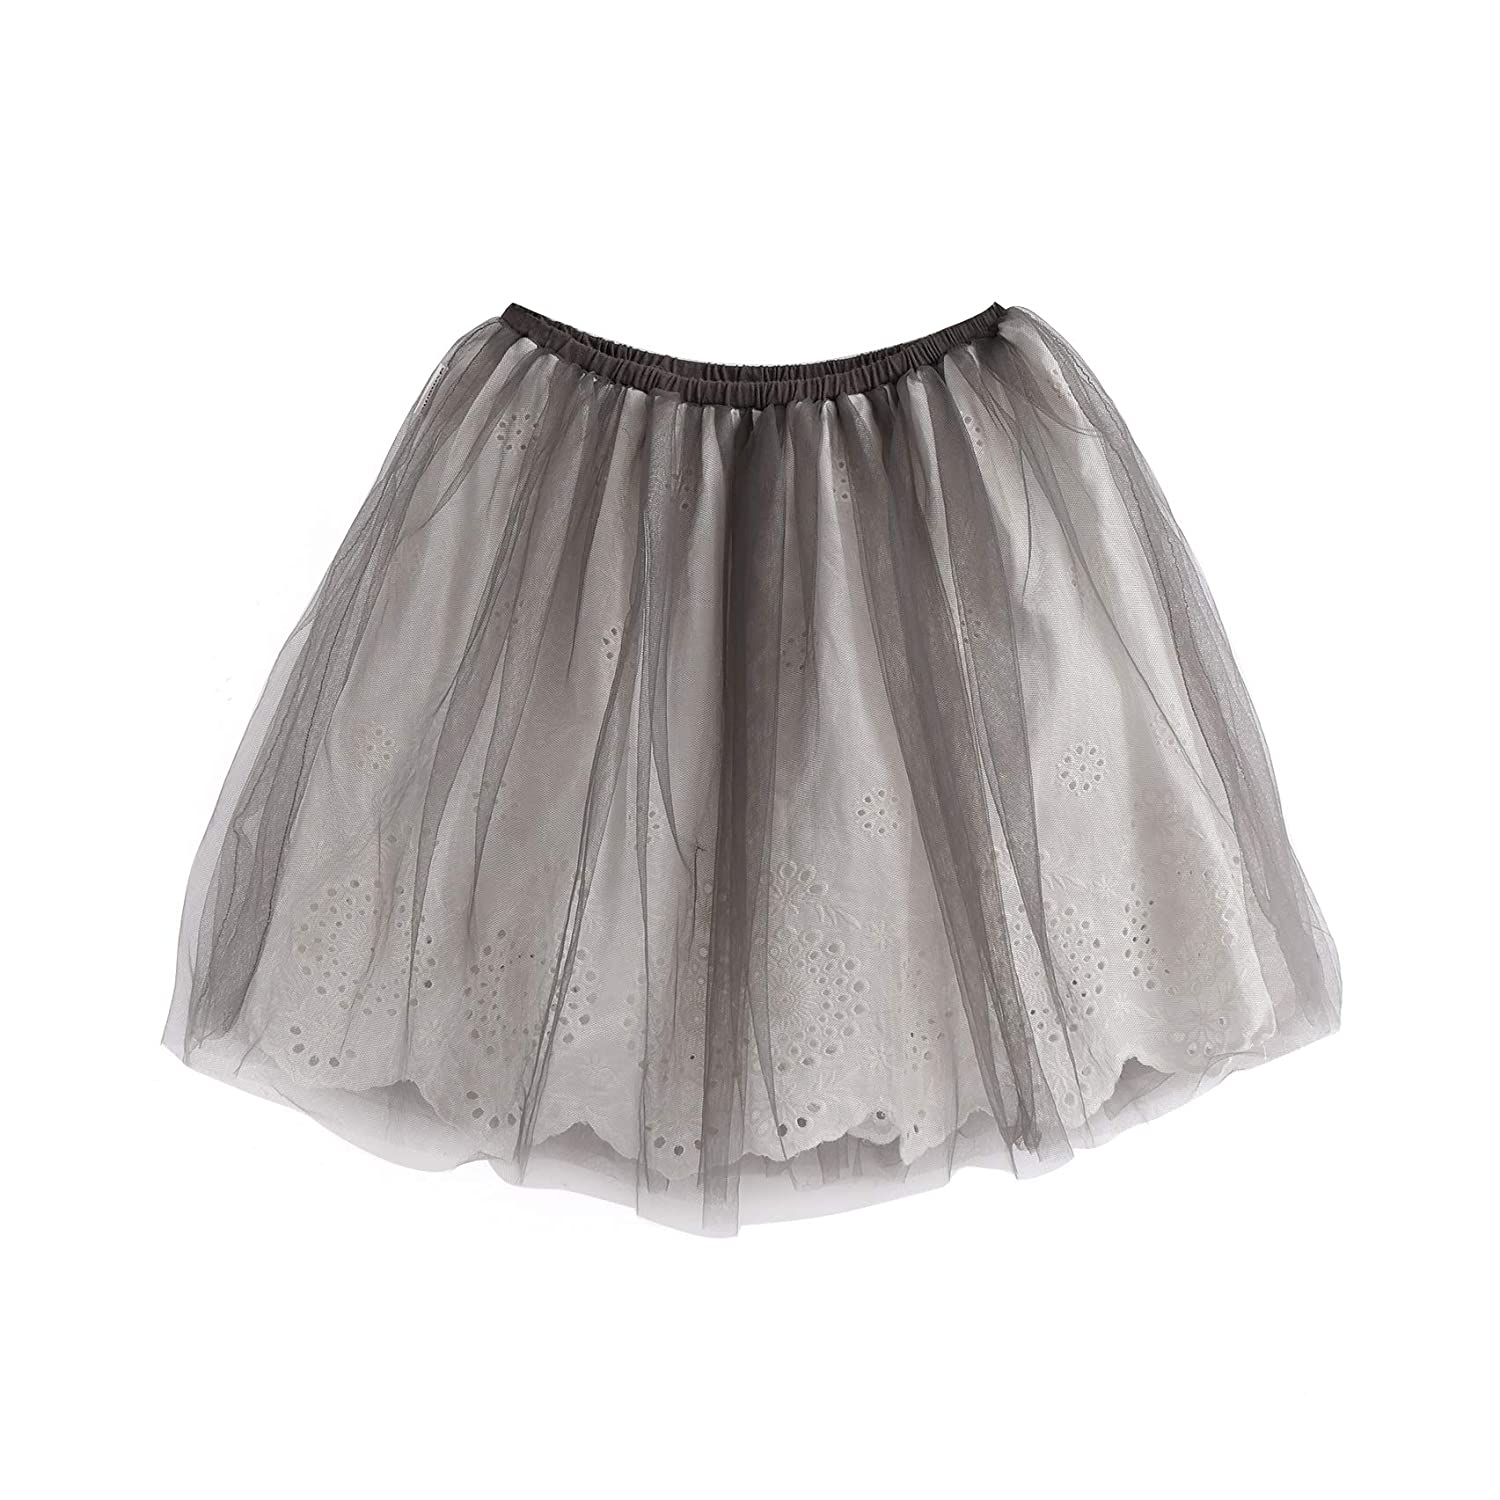 Aimama Toddler Girls Tulle 2 Layers Lace Dace Skirt Pink /& Black with Elastic Waistband for 1-6T